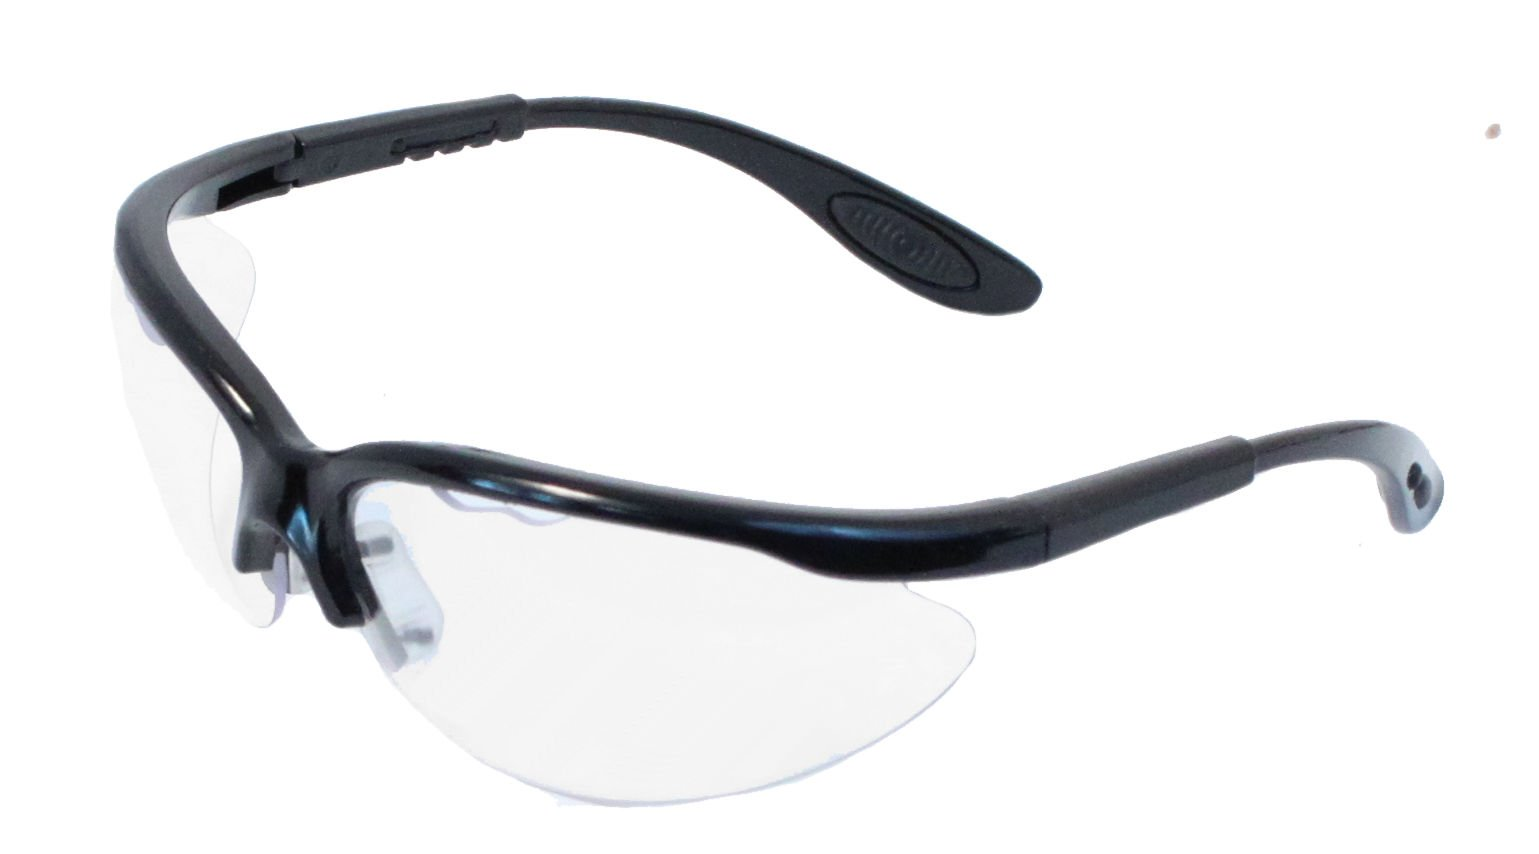 1ce57bf5b0f Python Xtreme View Protective Racquetball Eyeguard (Eyewear) Black   White  Available product image